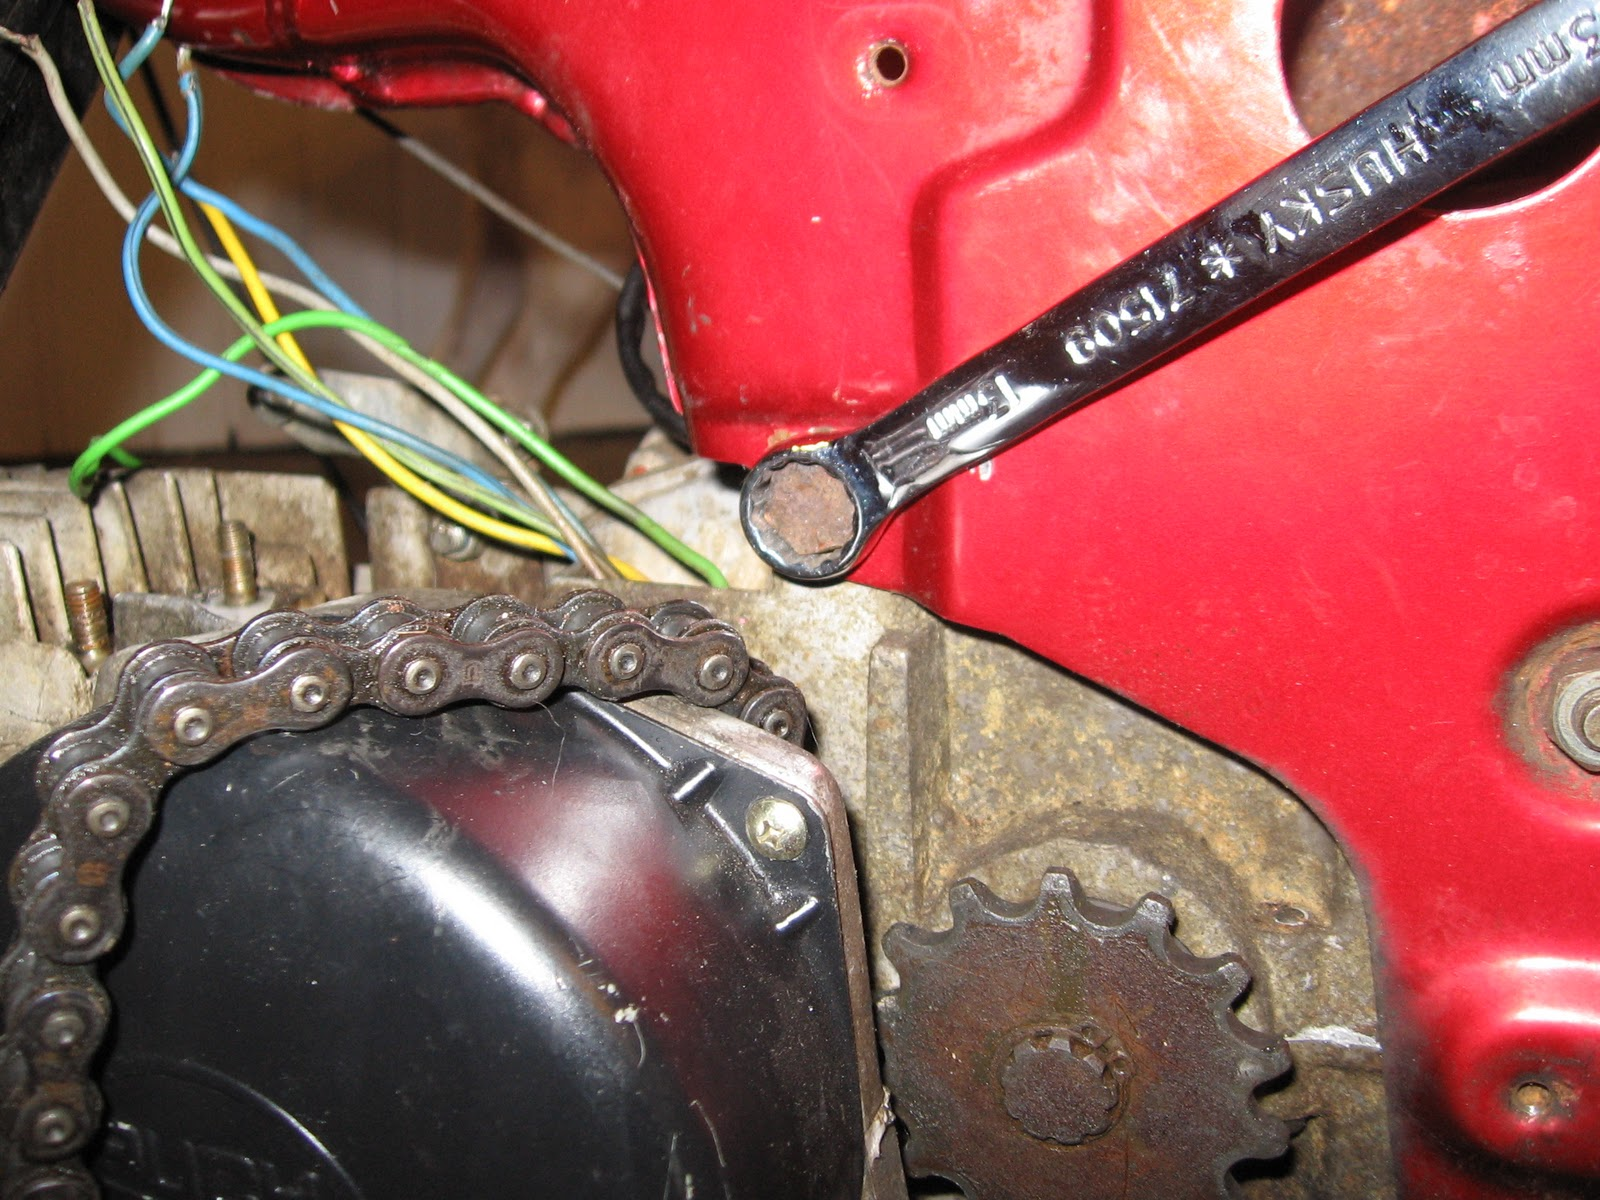 1980 puch moped wiring diagram puch moped clutch wiring